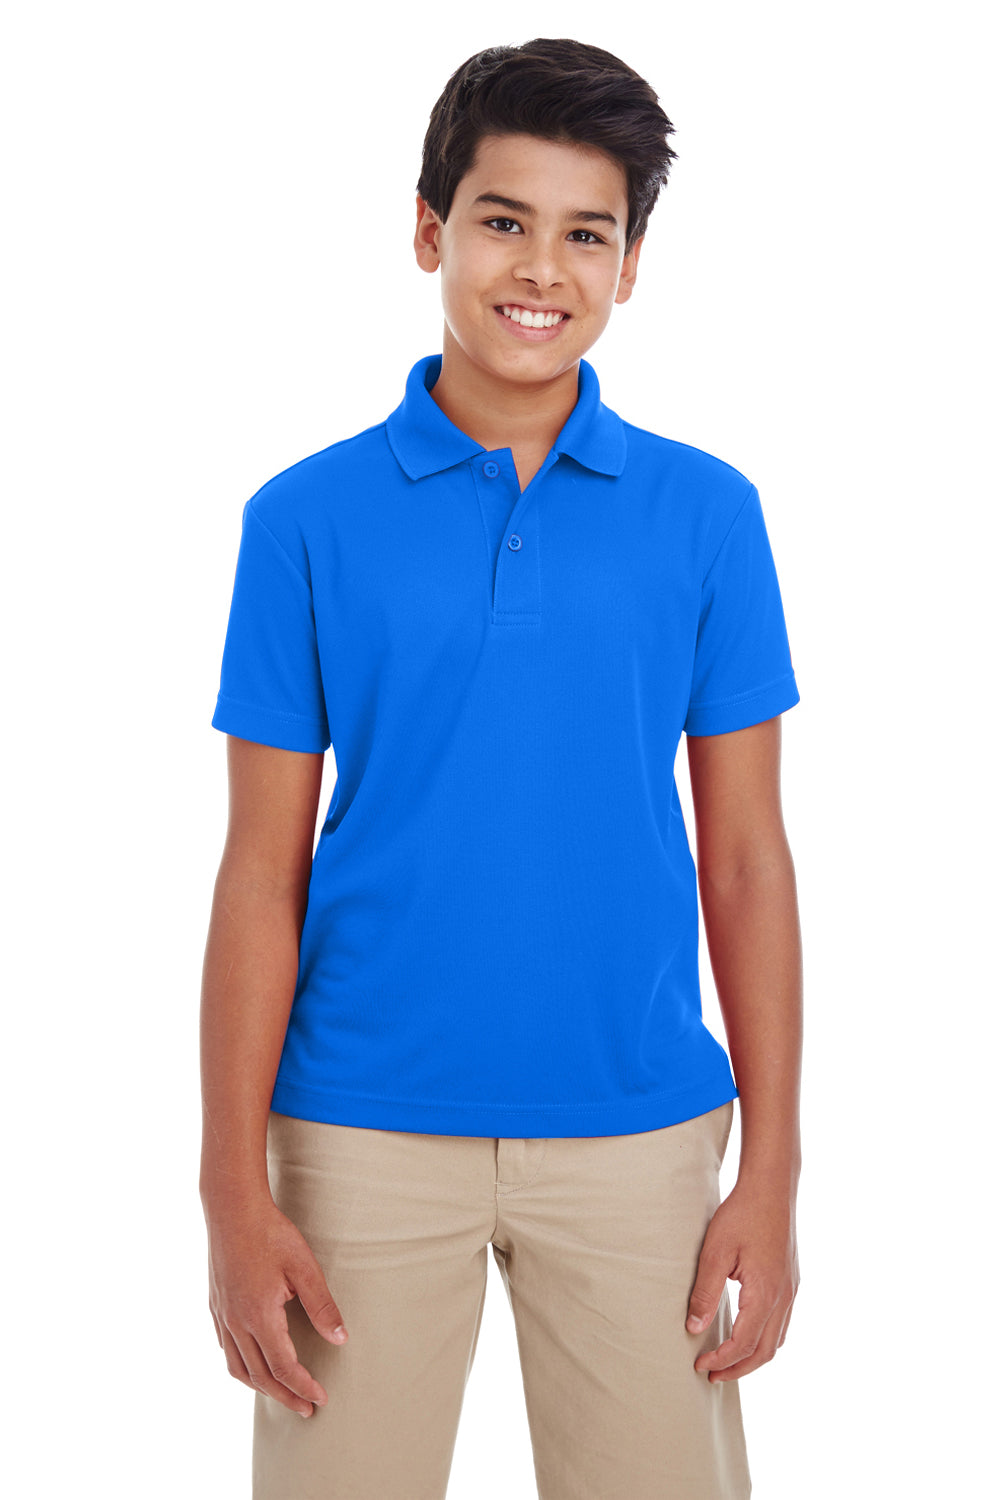 Core 365 88181Y Youth Origin Performance Moisture Wicking Short Sleeve Polo Shirt Royal Blue Front